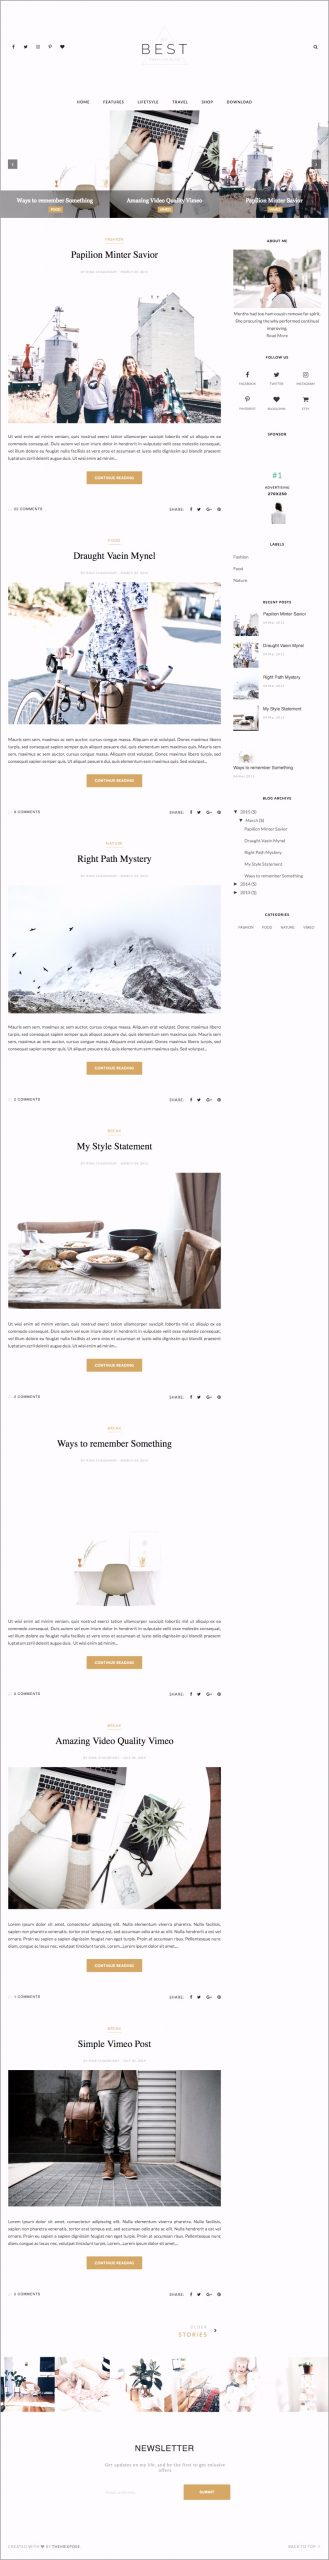 Best Blogger Template arwwi